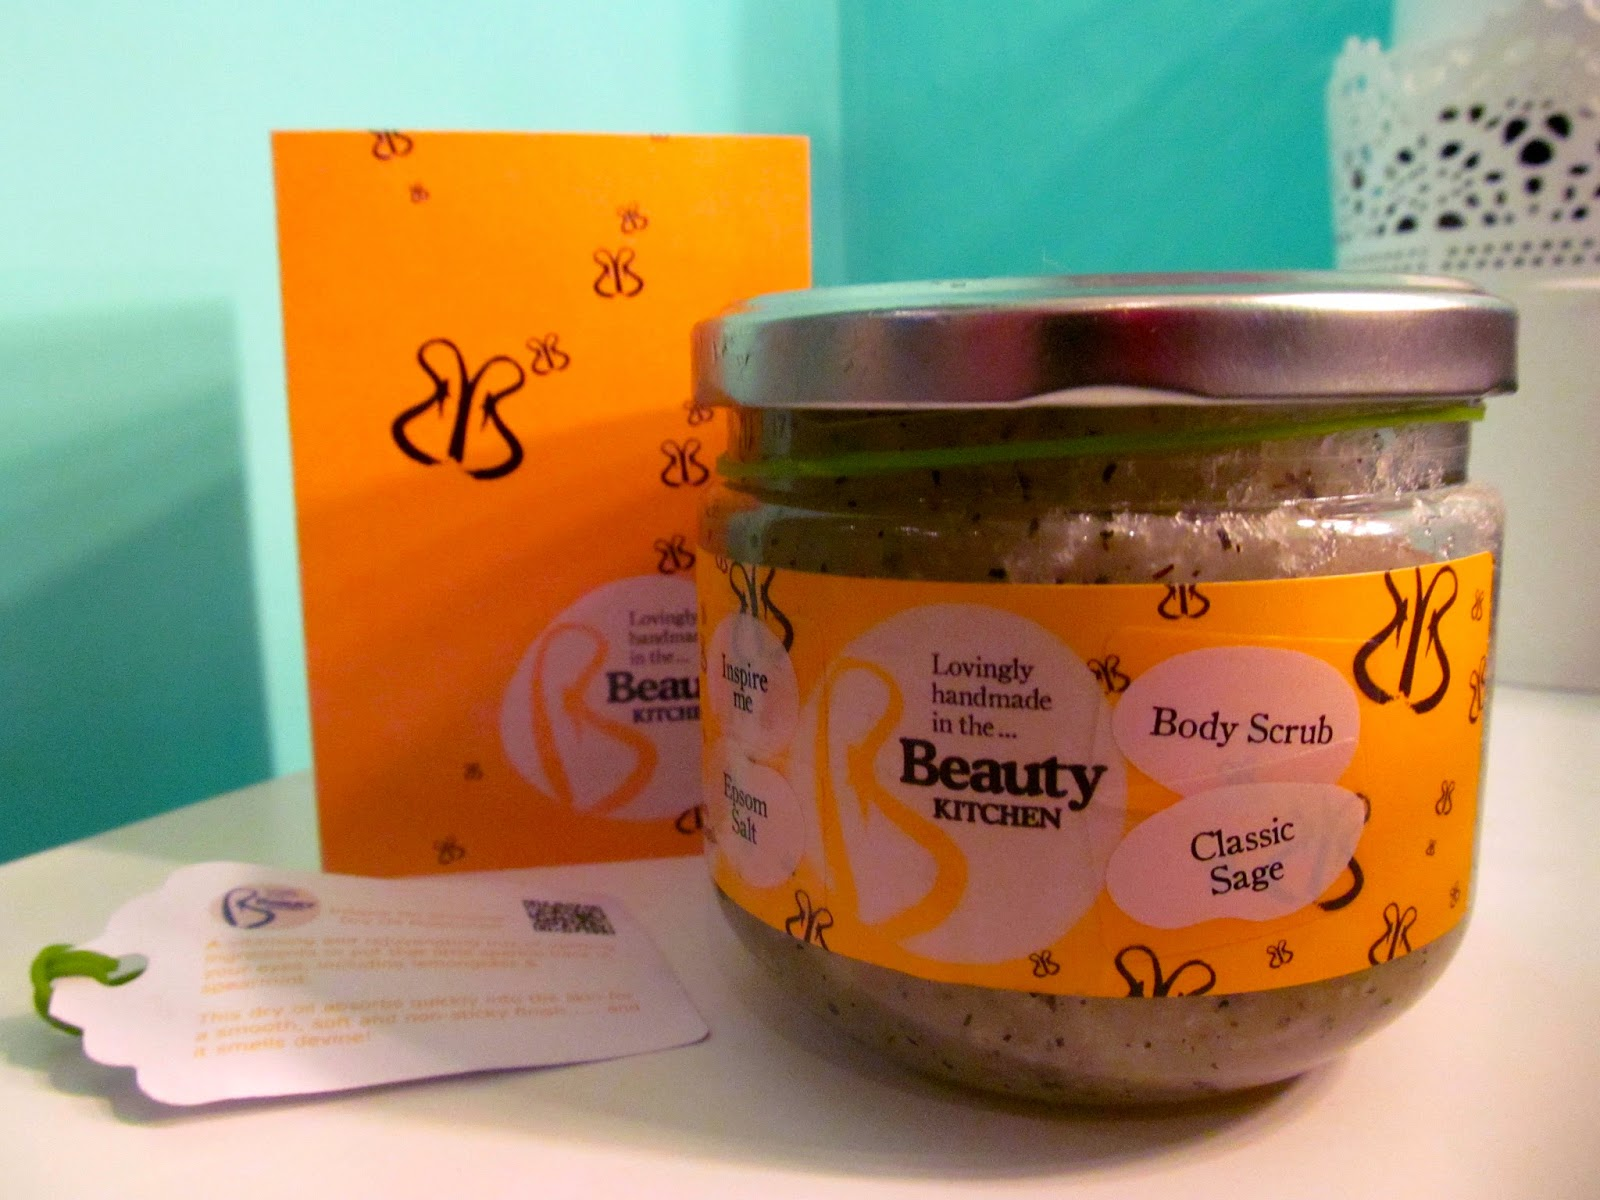 Beauty Kitchen Body Scrub